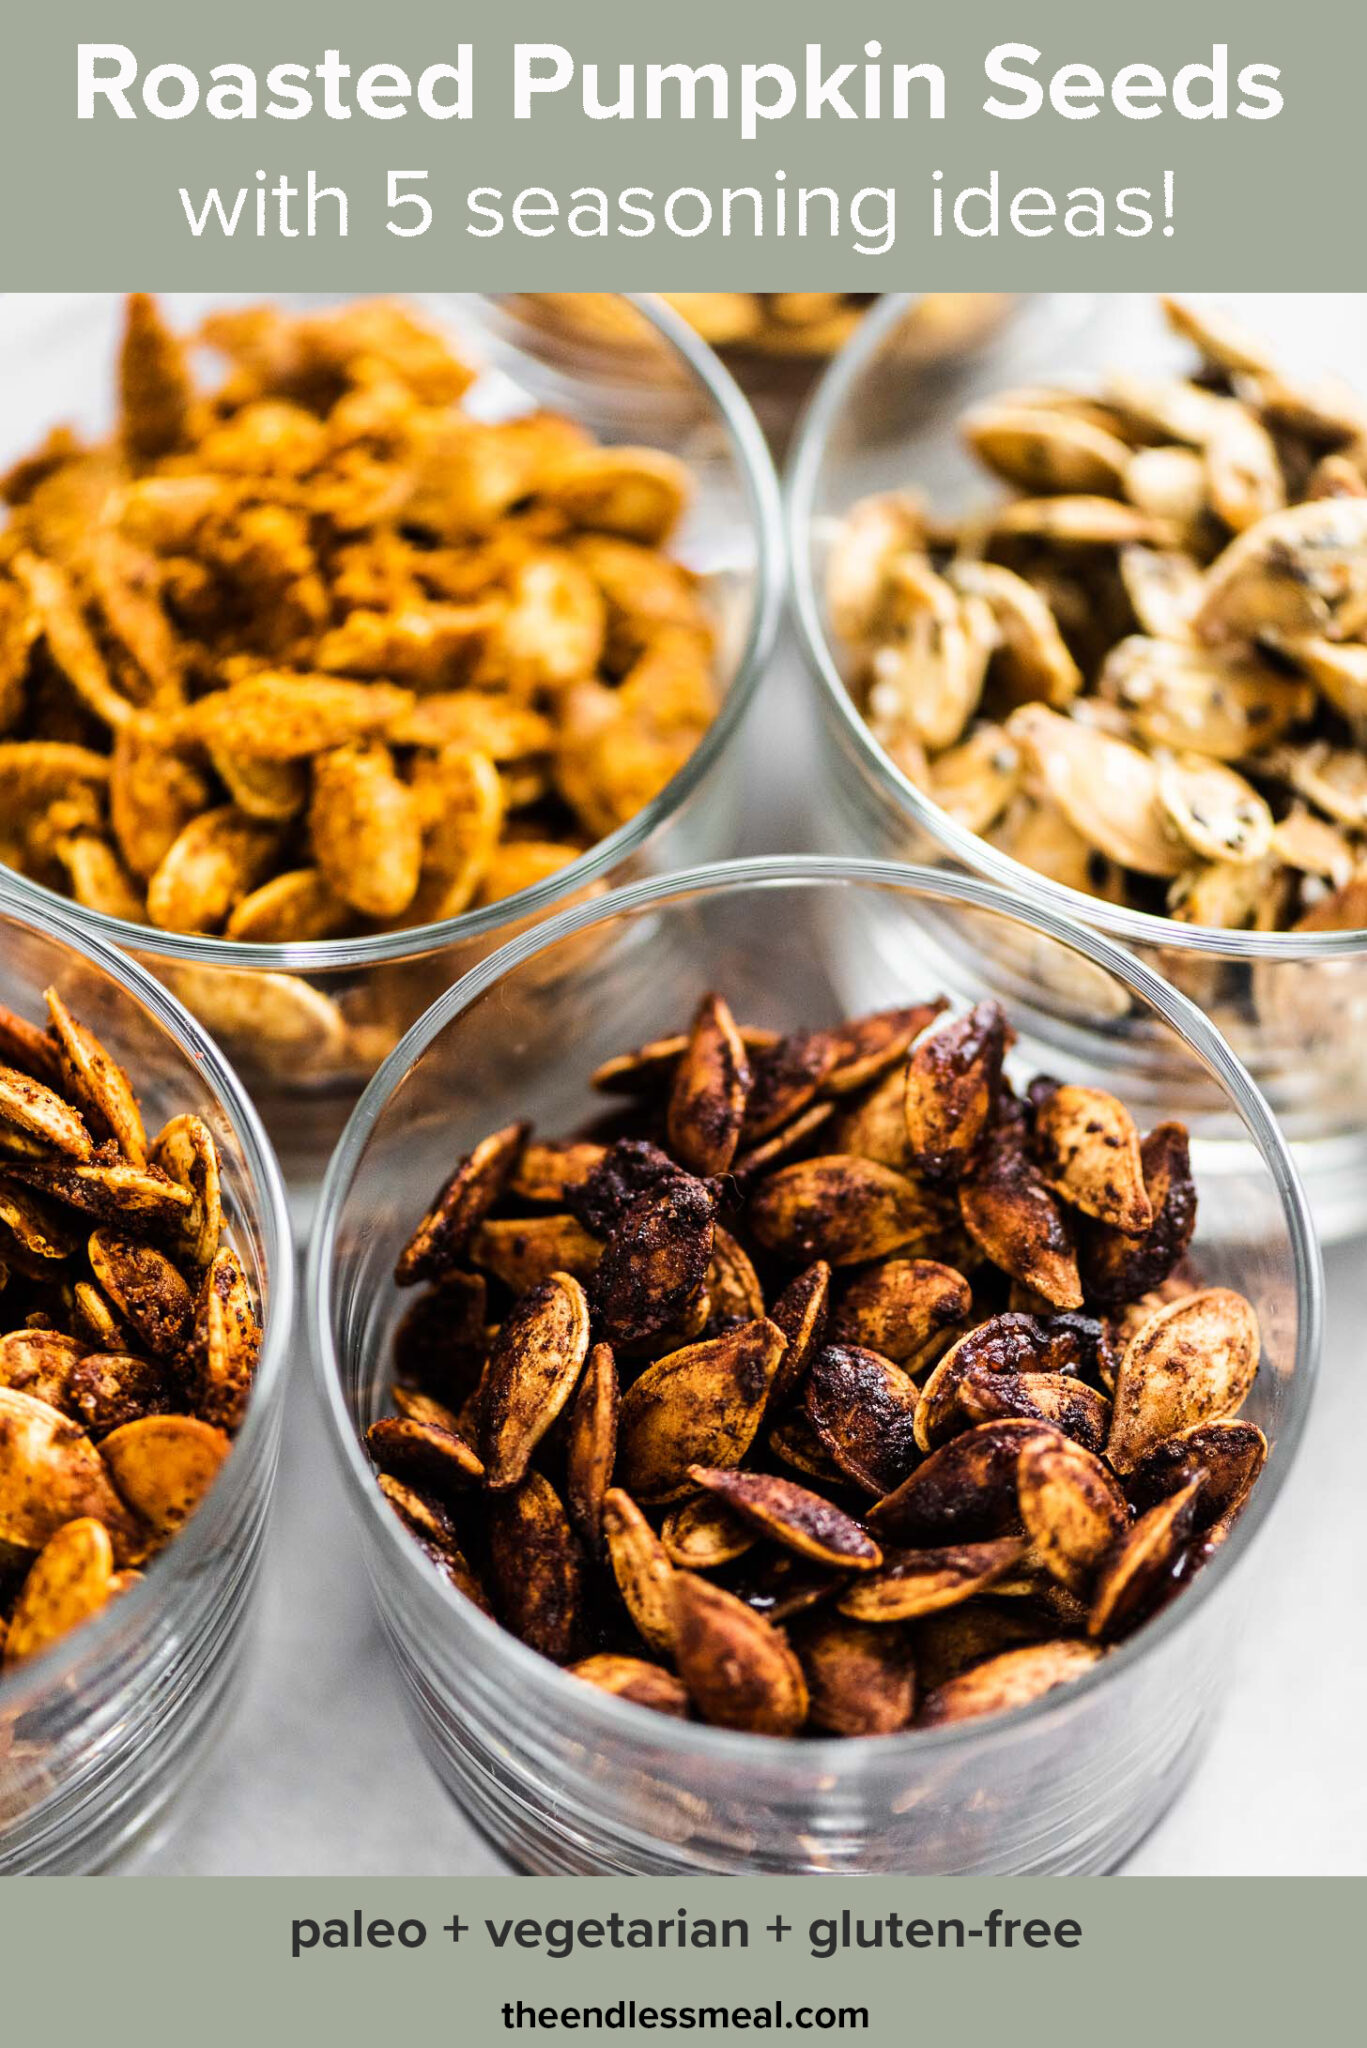 Flavored roasted pumpkin seeds in little dishes with the recipe title on top of the picture.